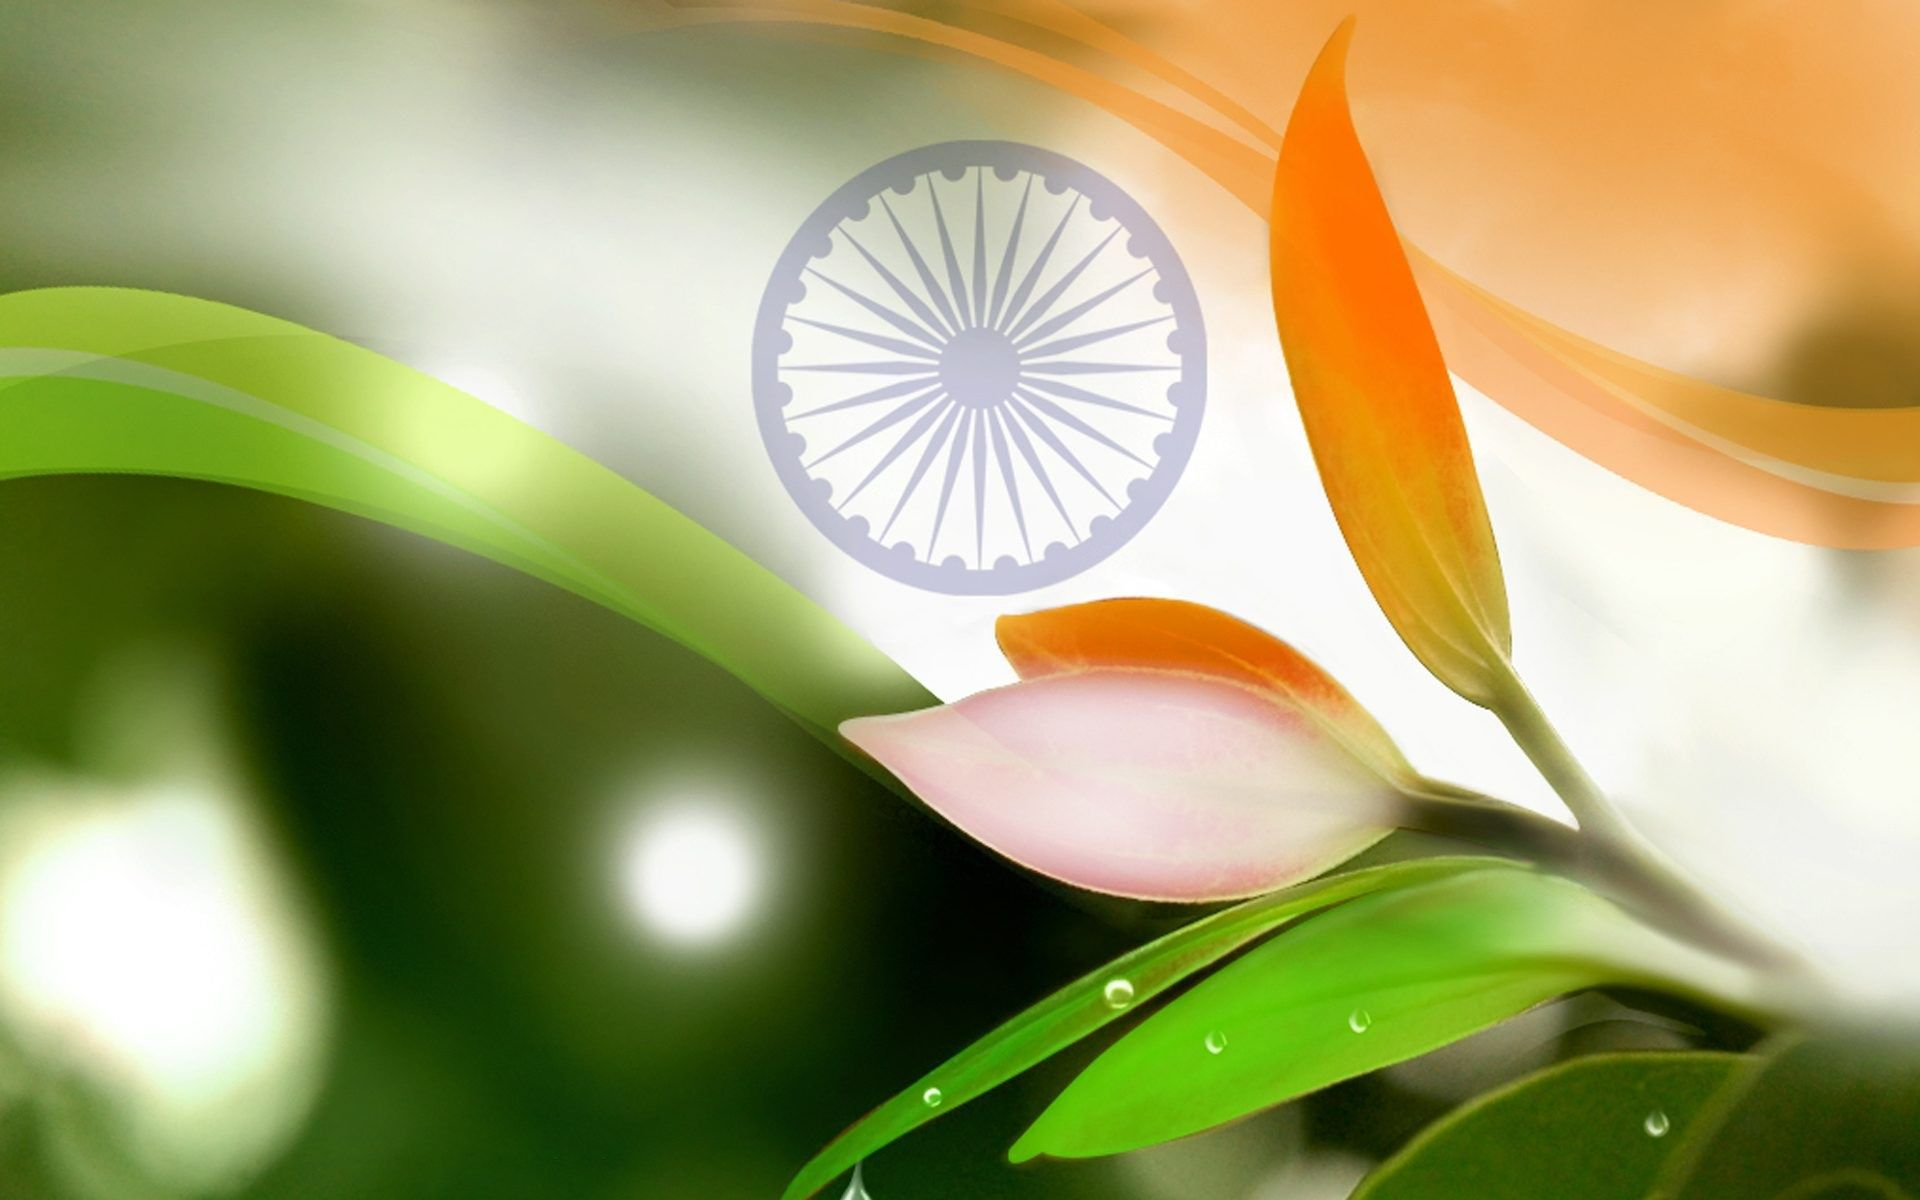 Tiranga In Nature Wallpaper For Indian Flag Decoration Independence Day Wallpaper Independence Day Independence Day Images